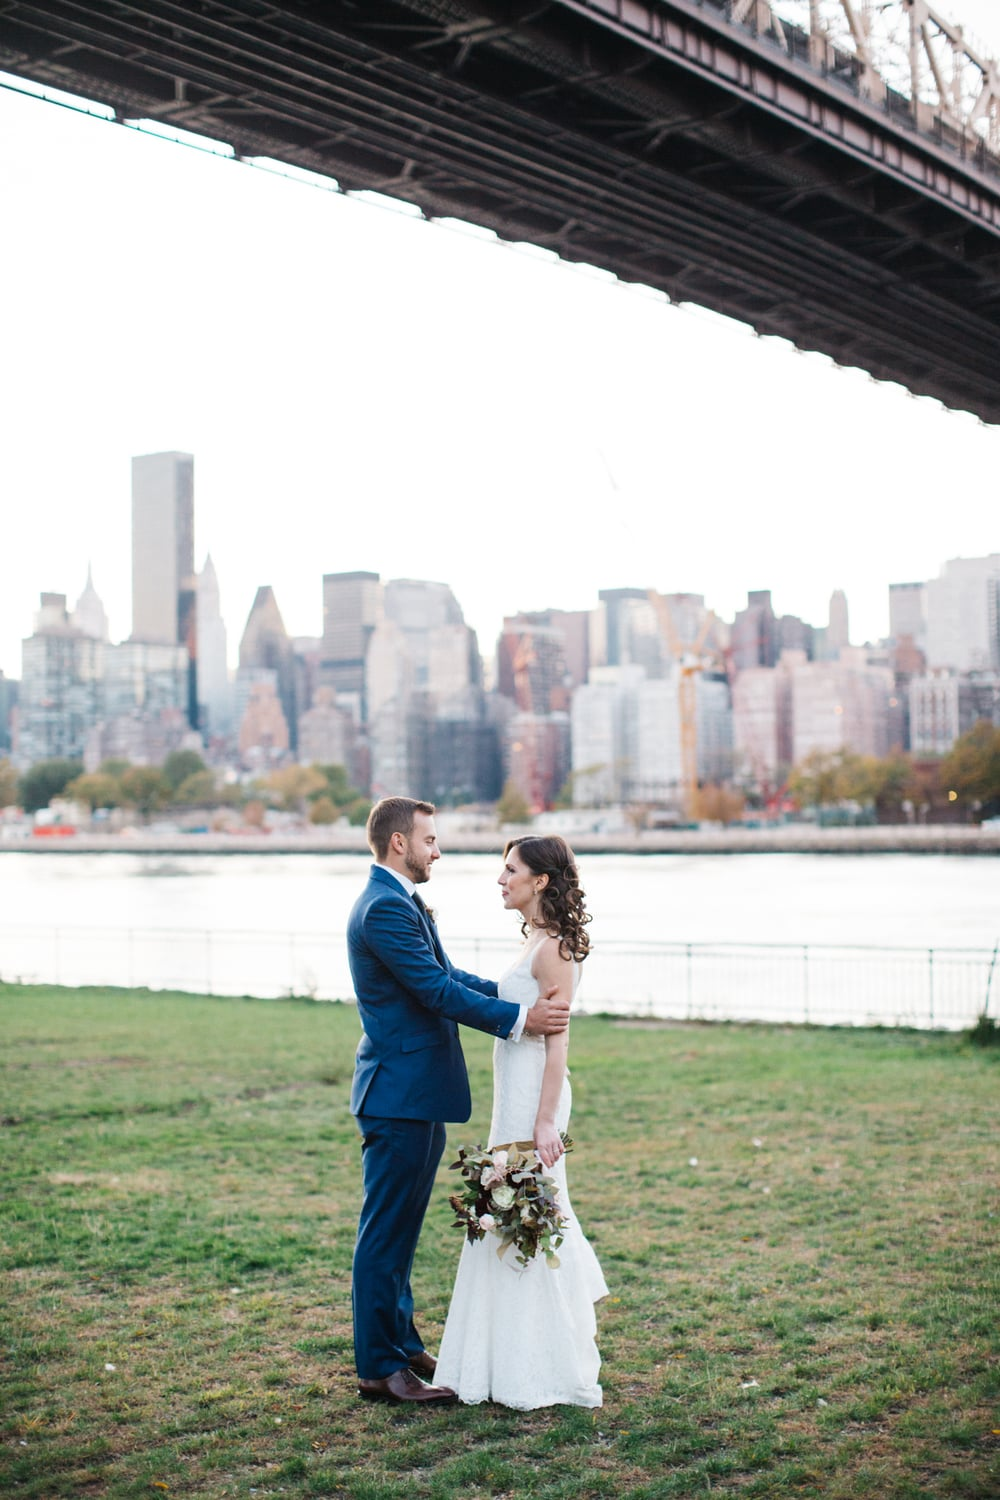 CHRIS AND KIM NEW YORK WEDDING THE FOUNDRY-37.jpg